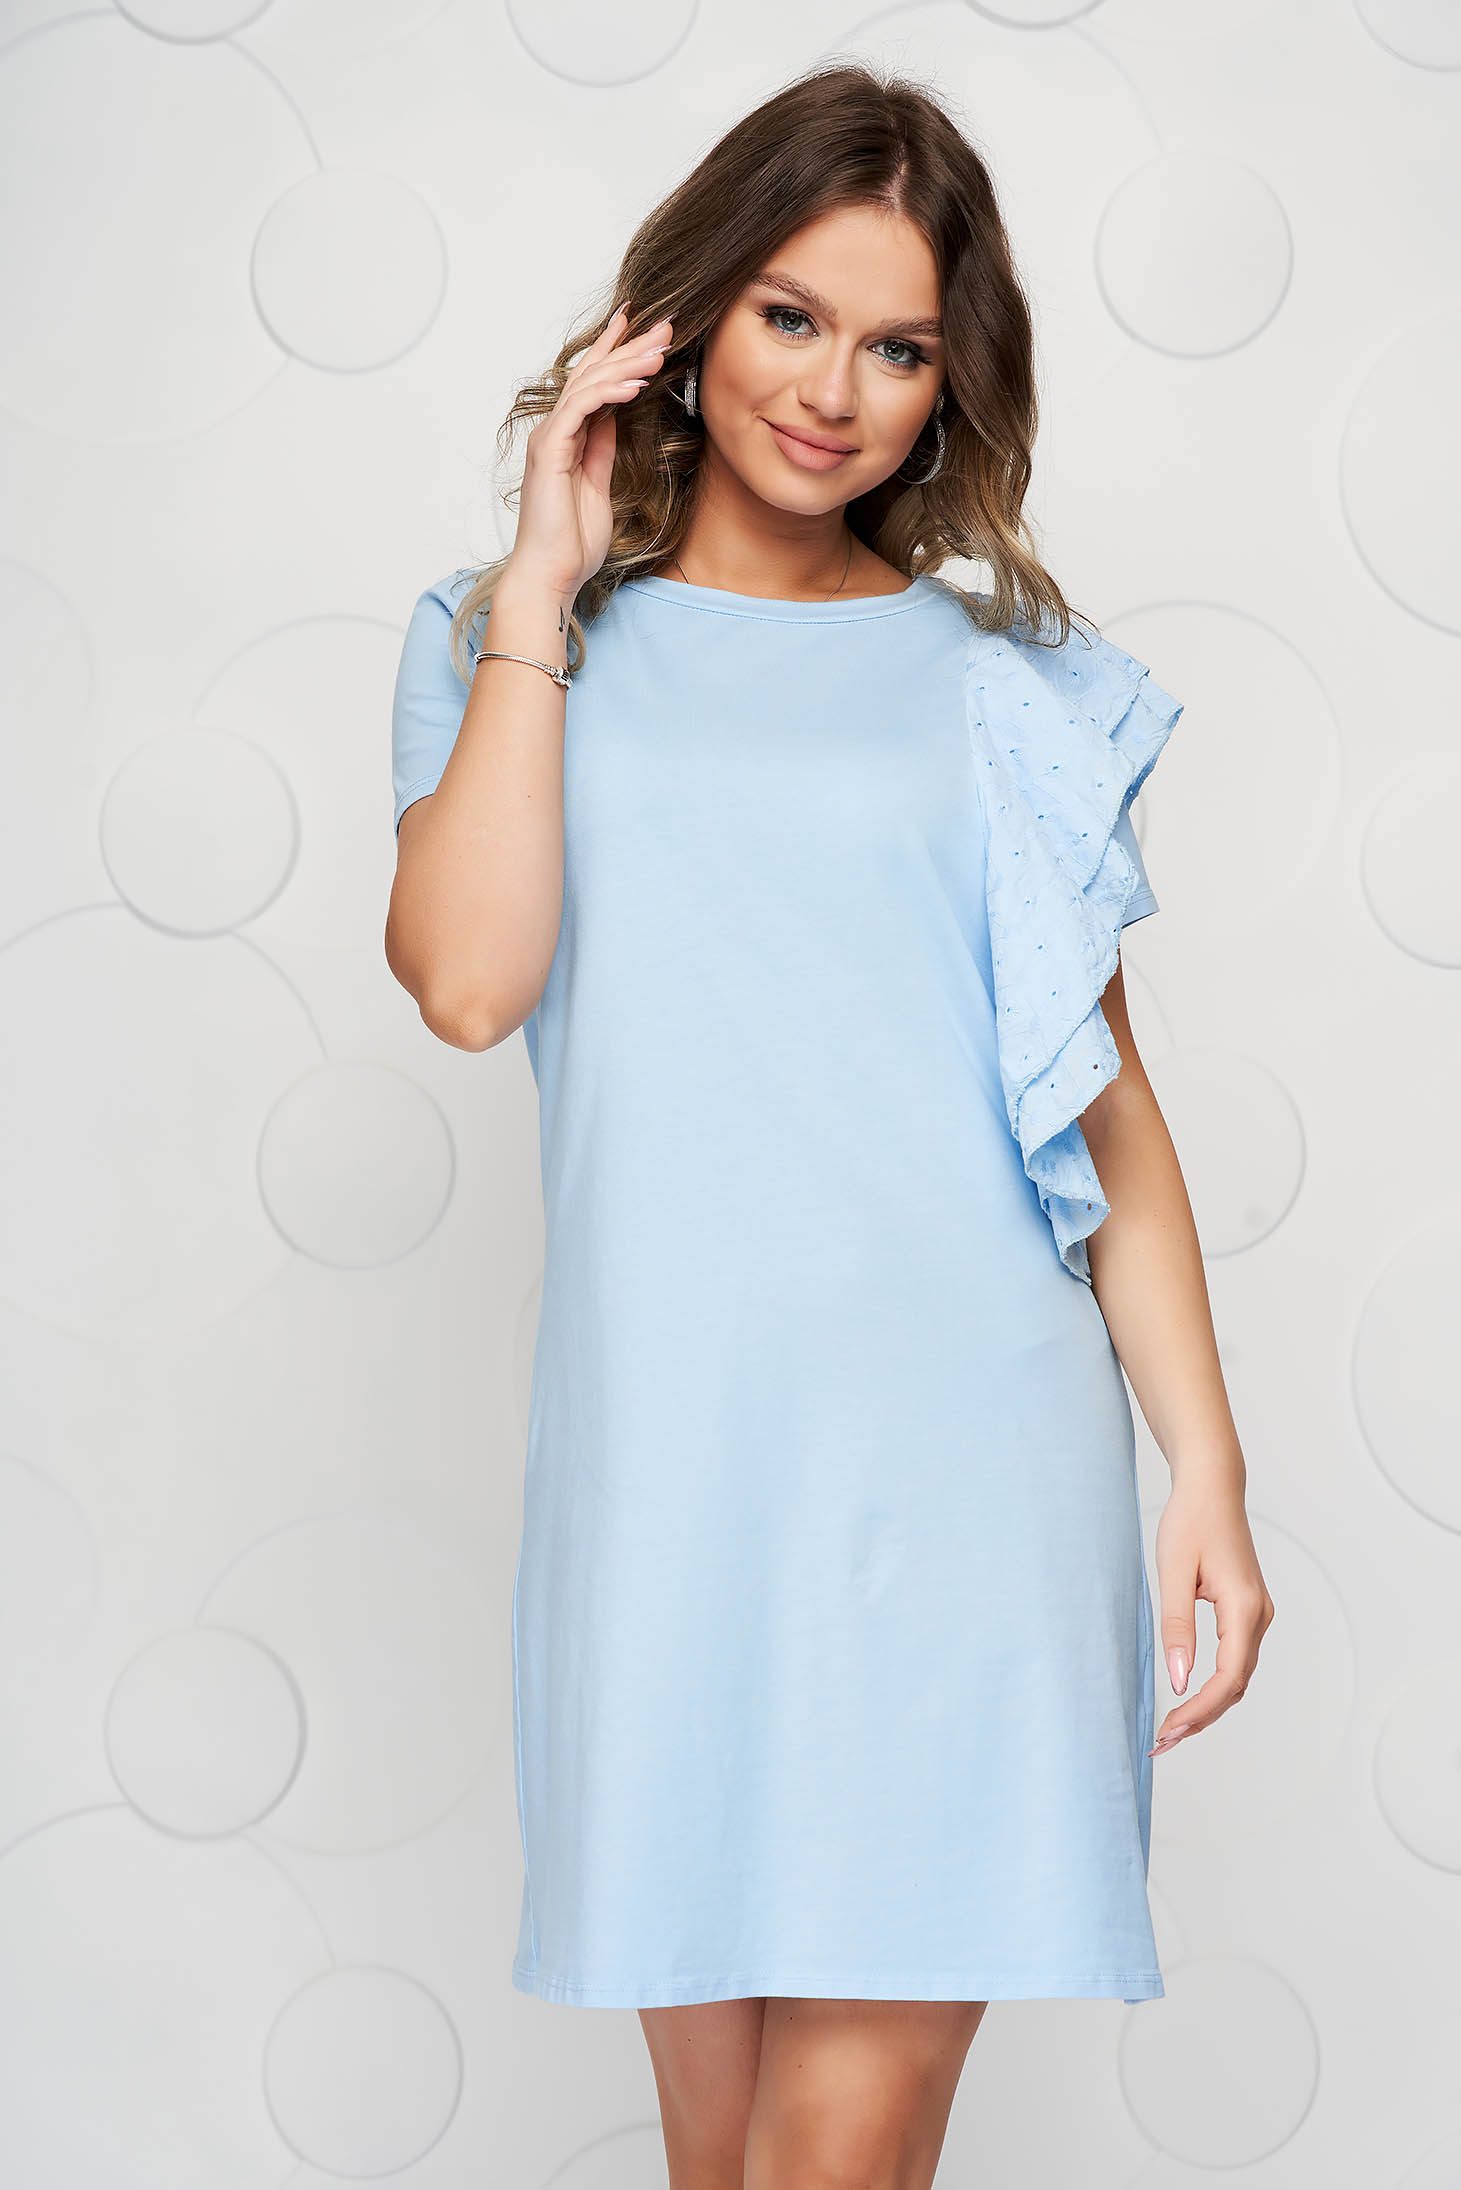 Lightblue dress cotton loose fit with ruffle details